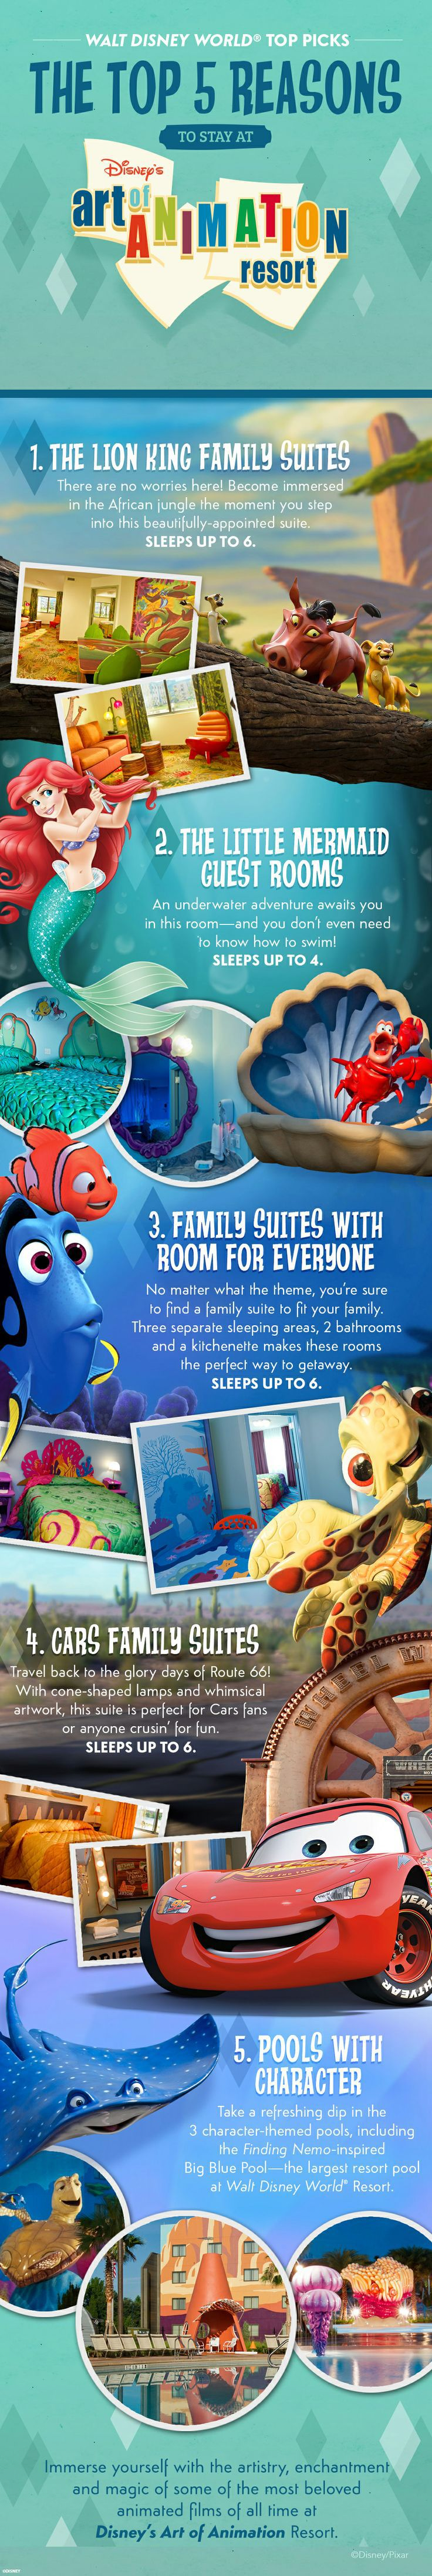 From themed family suites to pools with character, check out the Top 5 Reasons to Stay at Disney's Art of Animation Resort! #3DTC get your free quote today